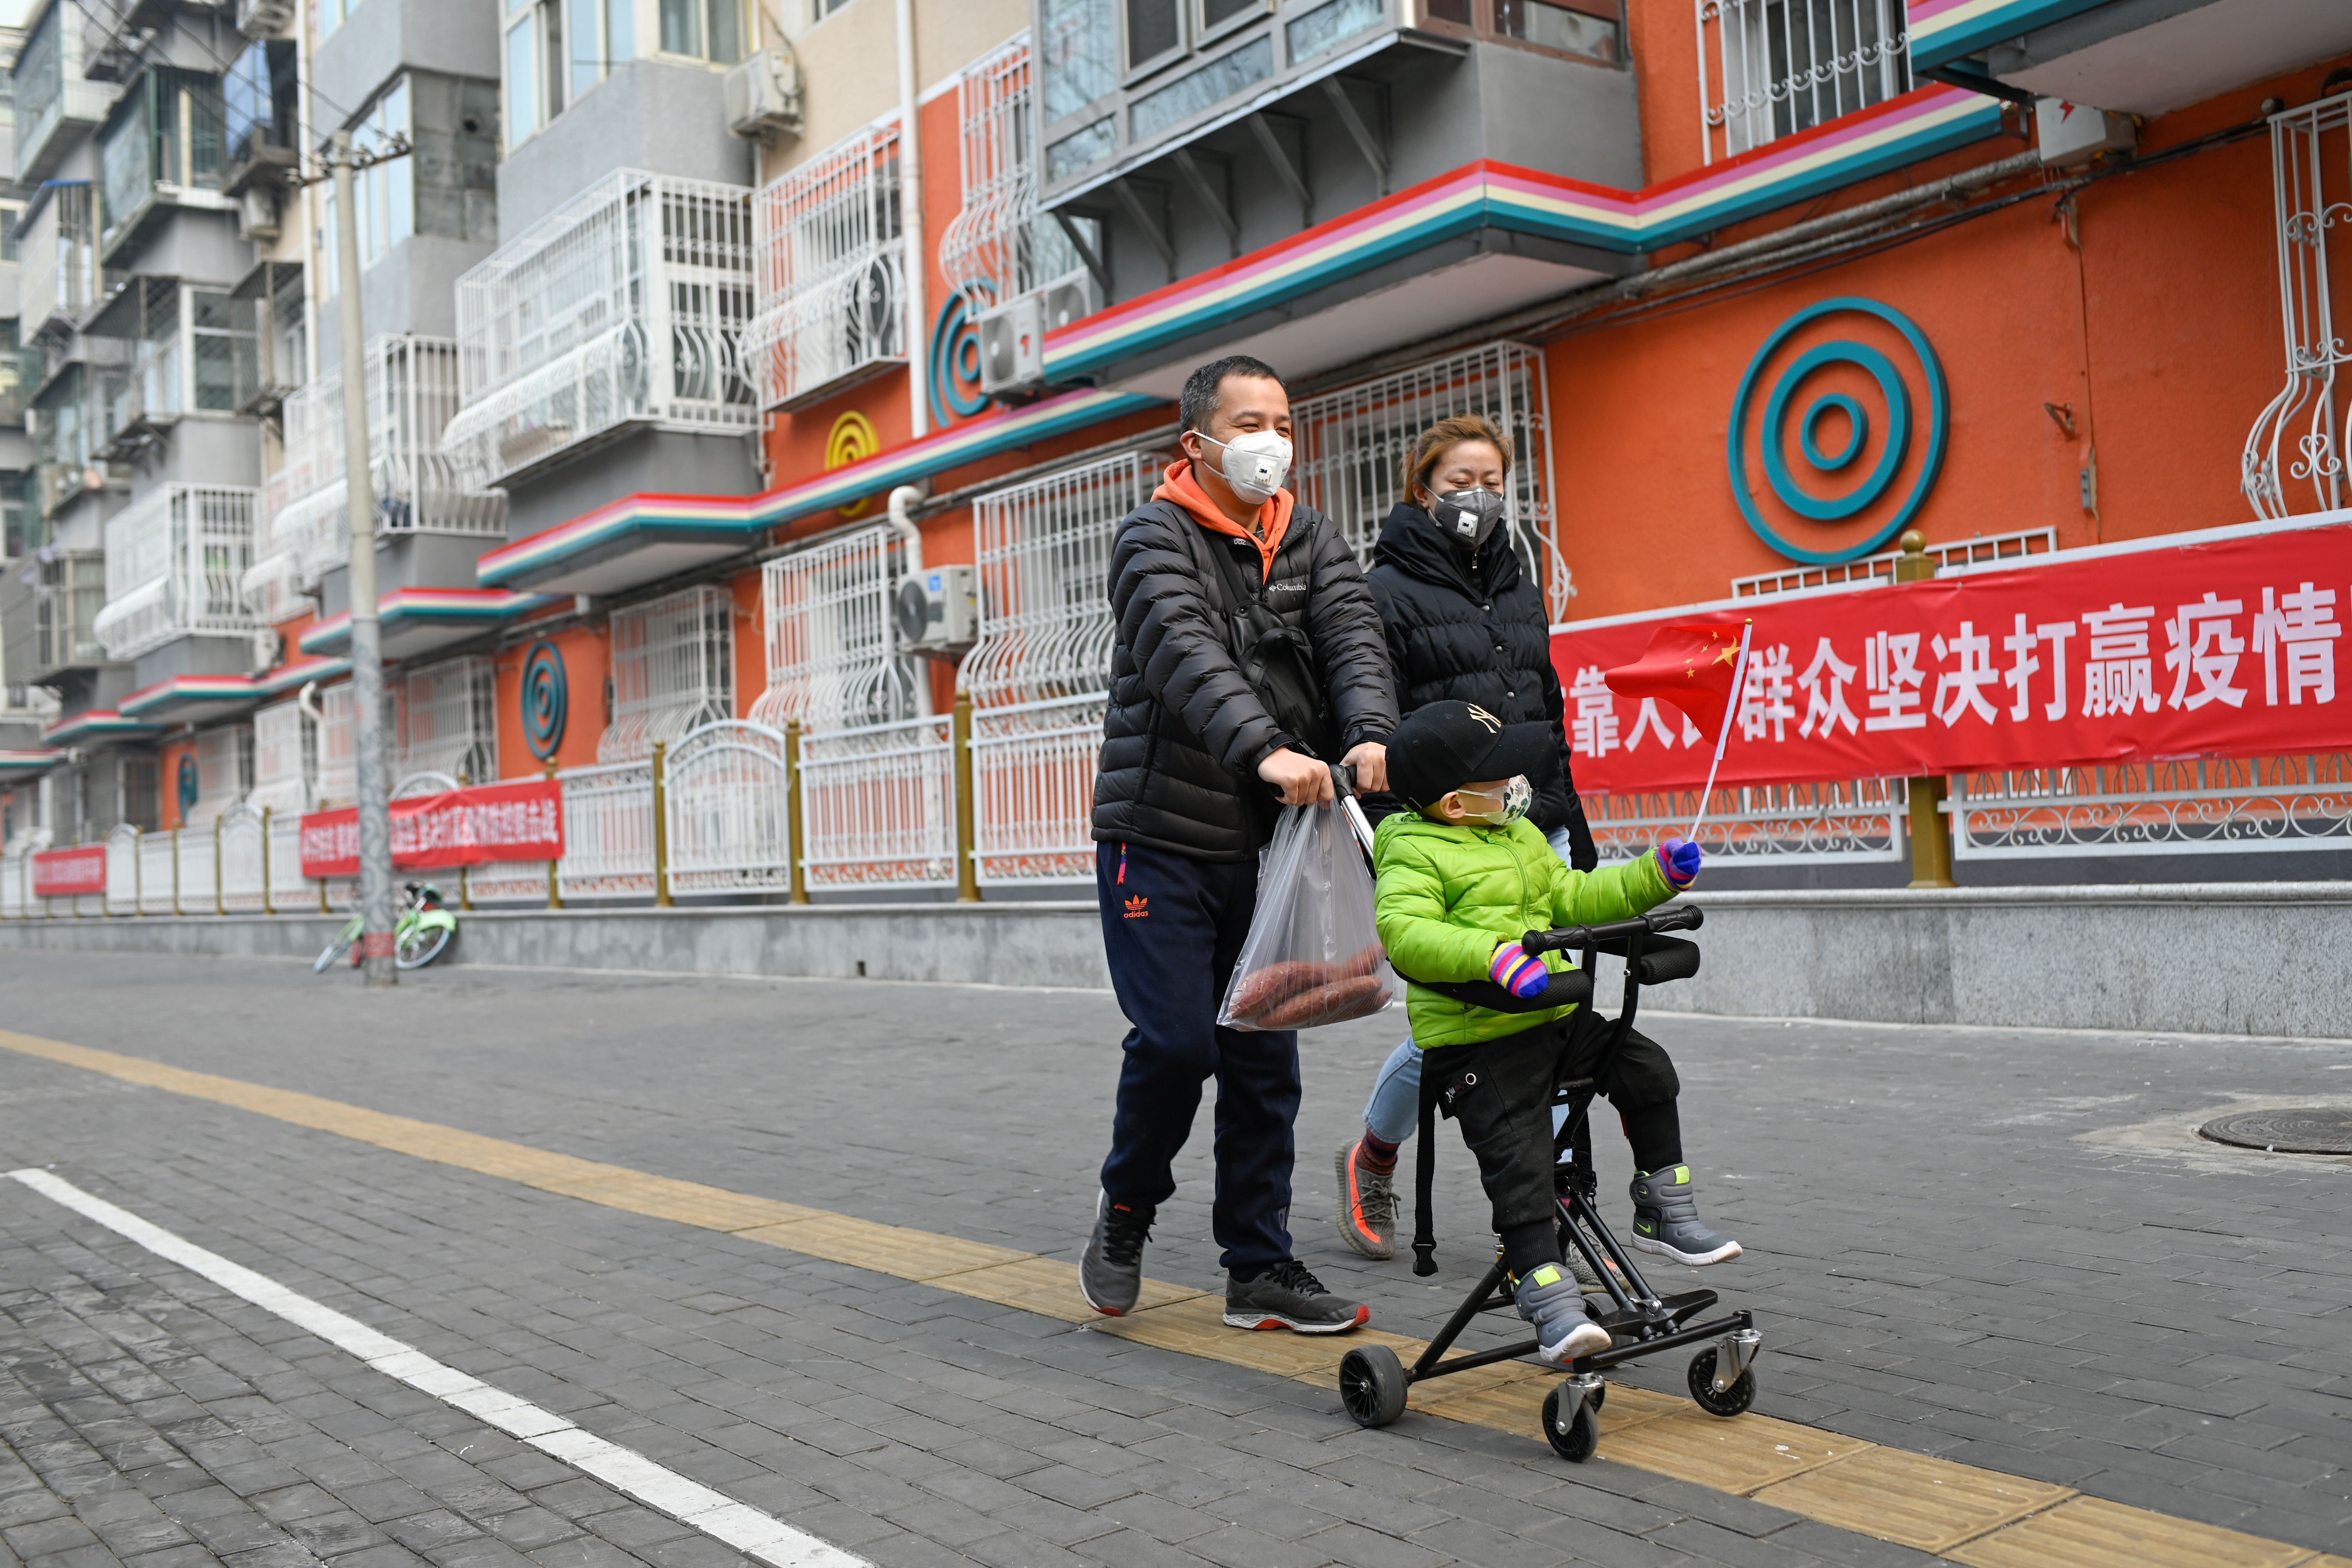 A boy wearing a face mask waves a Chinese national flag as he sits on a stroller in Beijing on February 13, 2020. - The number of deaths and new cases from China's COVID-19 coronavirus outbreak spiked dramatically on February 13 after authorities changed the way they count infections in a move that will likely fuel speculation that the severity of the outbreak has been under-reported. (Photo by STR / AFP) (Photo by STR/AFP via Getty Images)